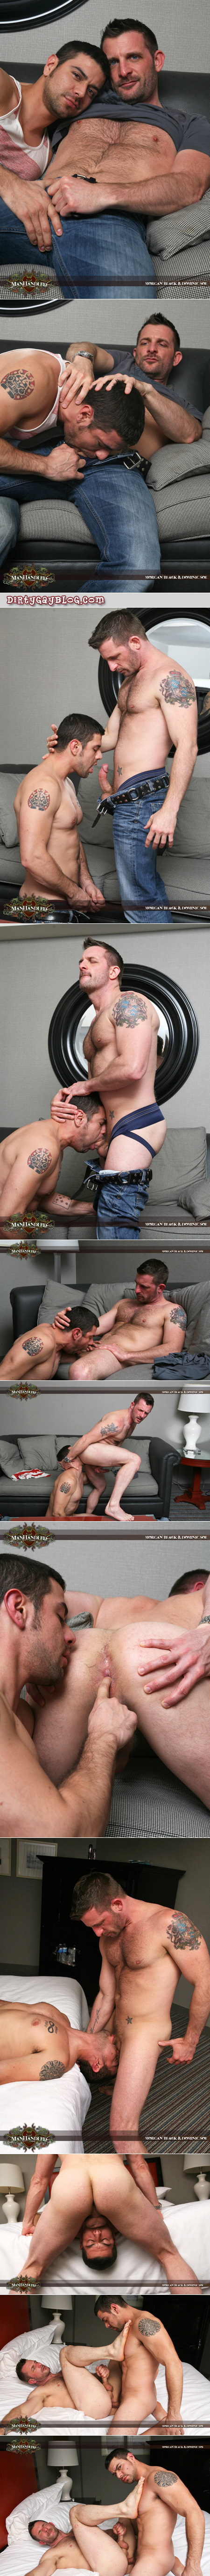 Scruffy, blue-eyed stud flip fucks with a thick horny Latino guy.